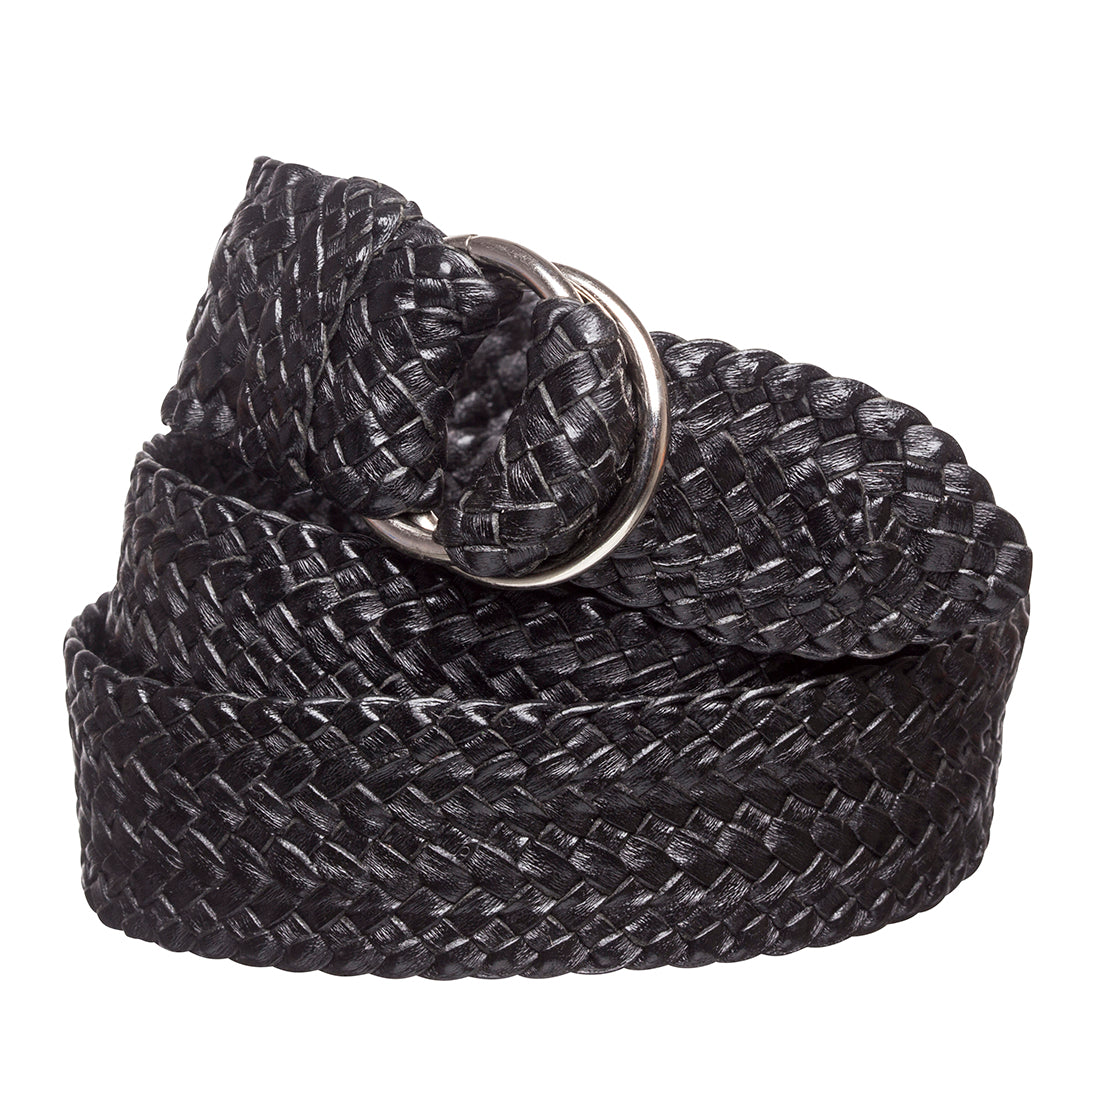 "R.M.Williams Black Plaited Kangaroo leather 1-1/4"" Nickel O Ring Belt"